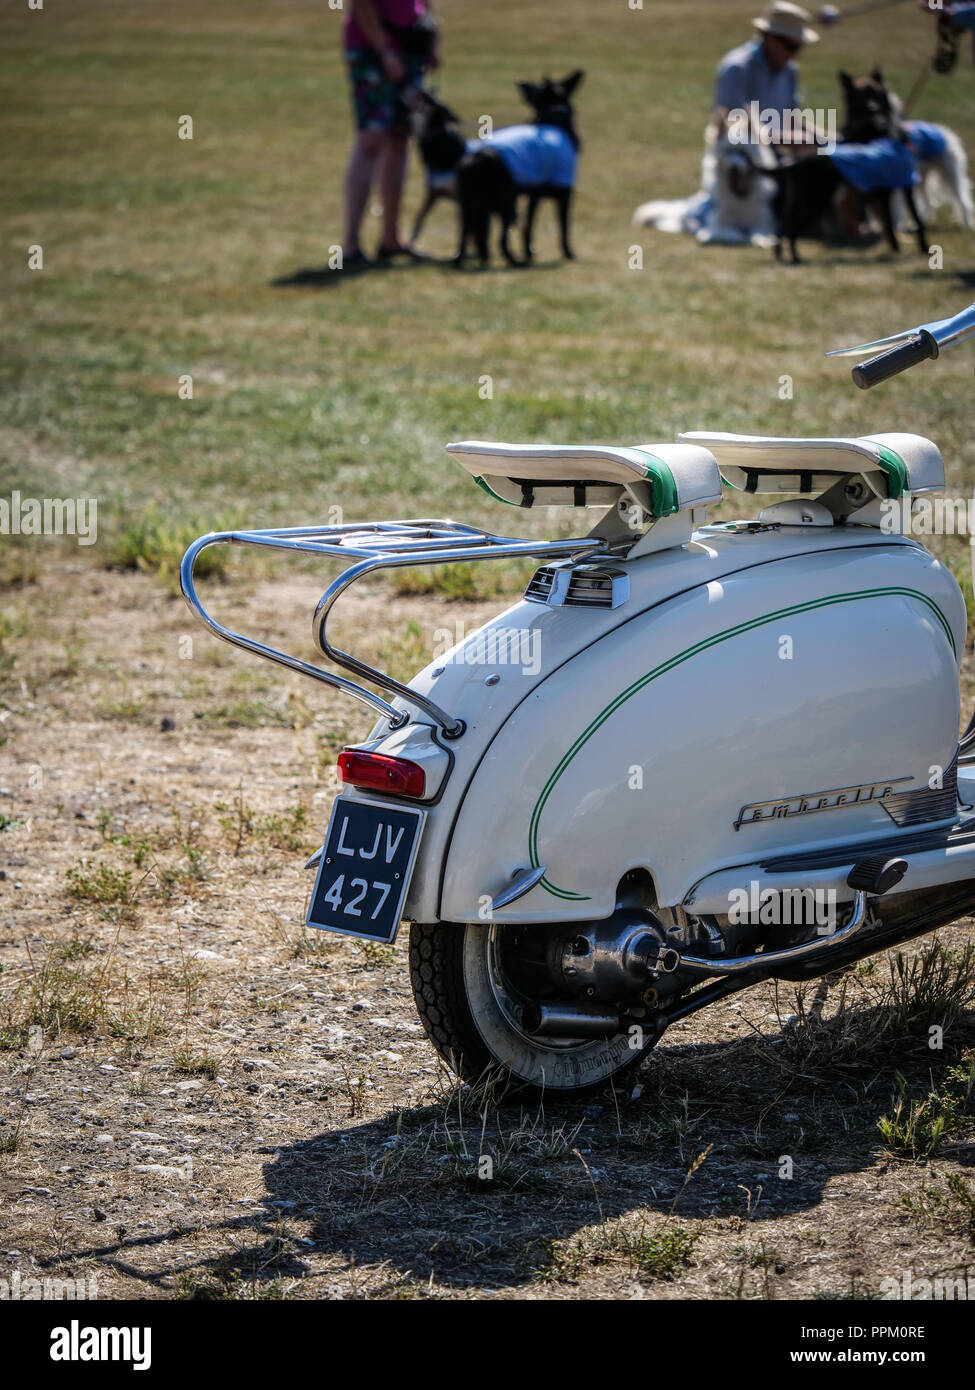 Vintage Retro Style Lambretta At A Summer Dog Show Event Stock Photo Alamy